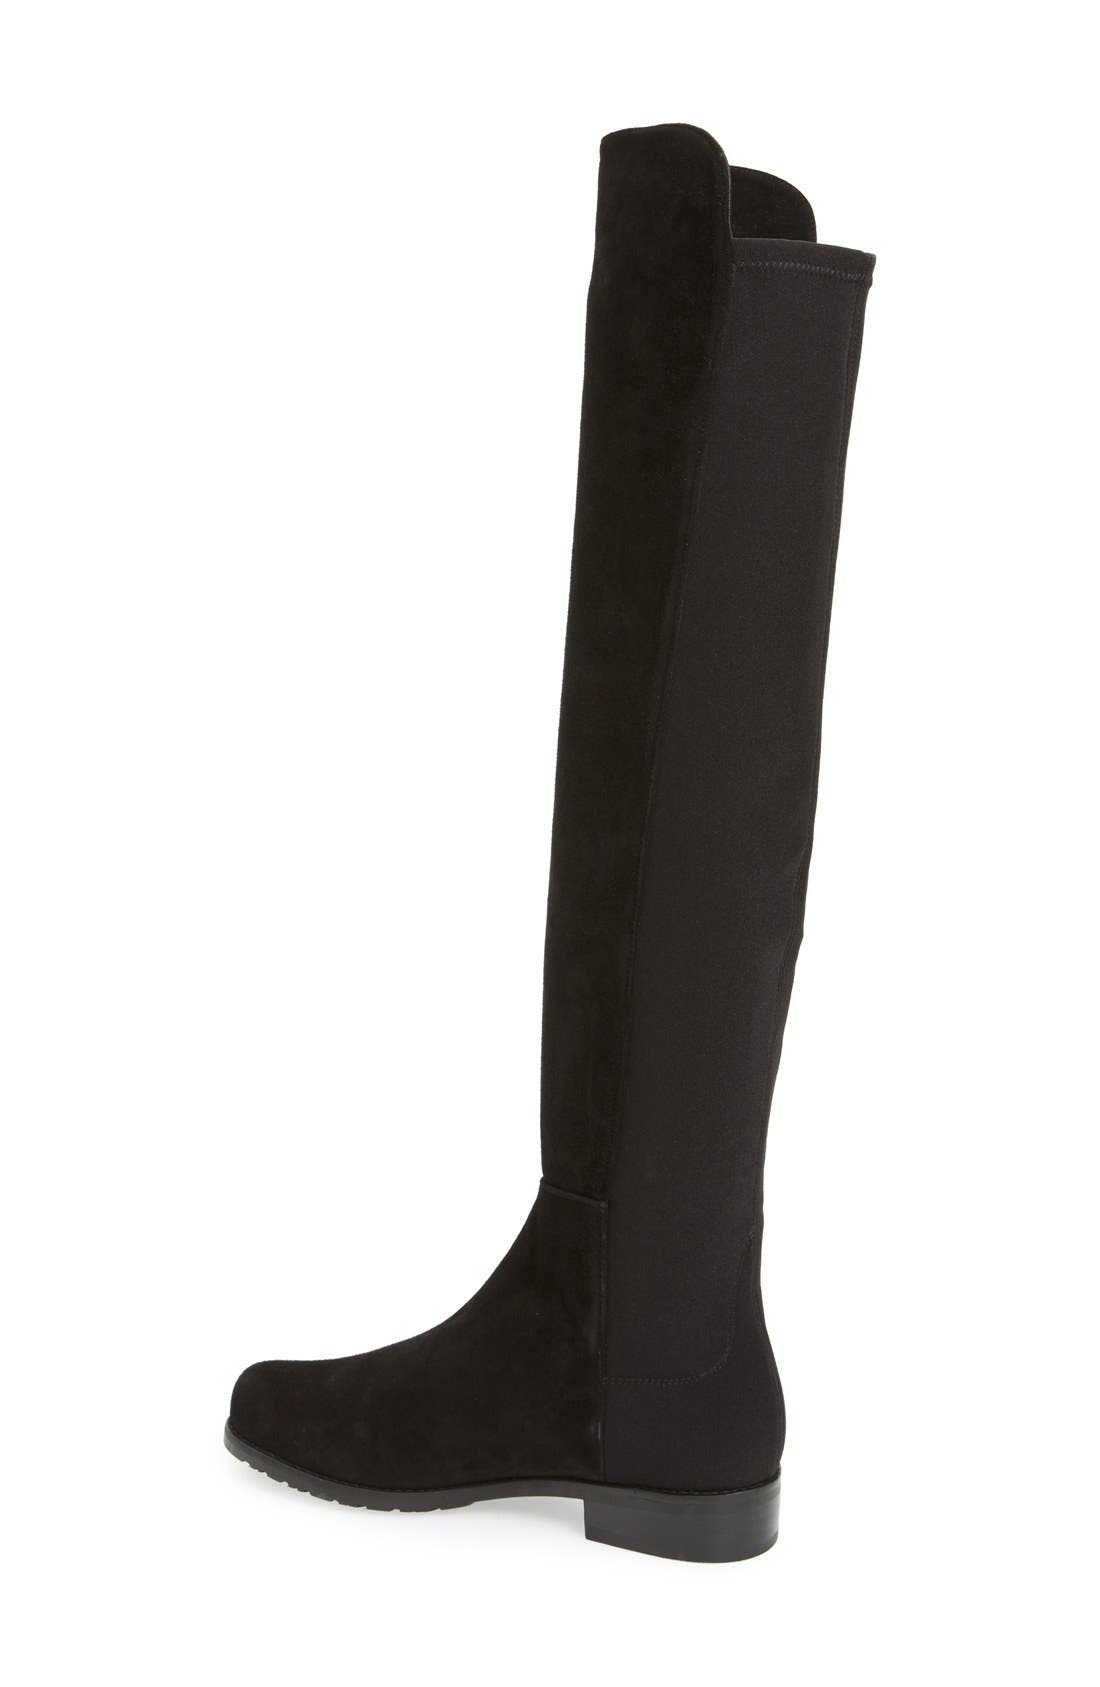 5050 Over the Knee Leather Boot,                             Alternate thumbnail 2, color,                             Black Suede